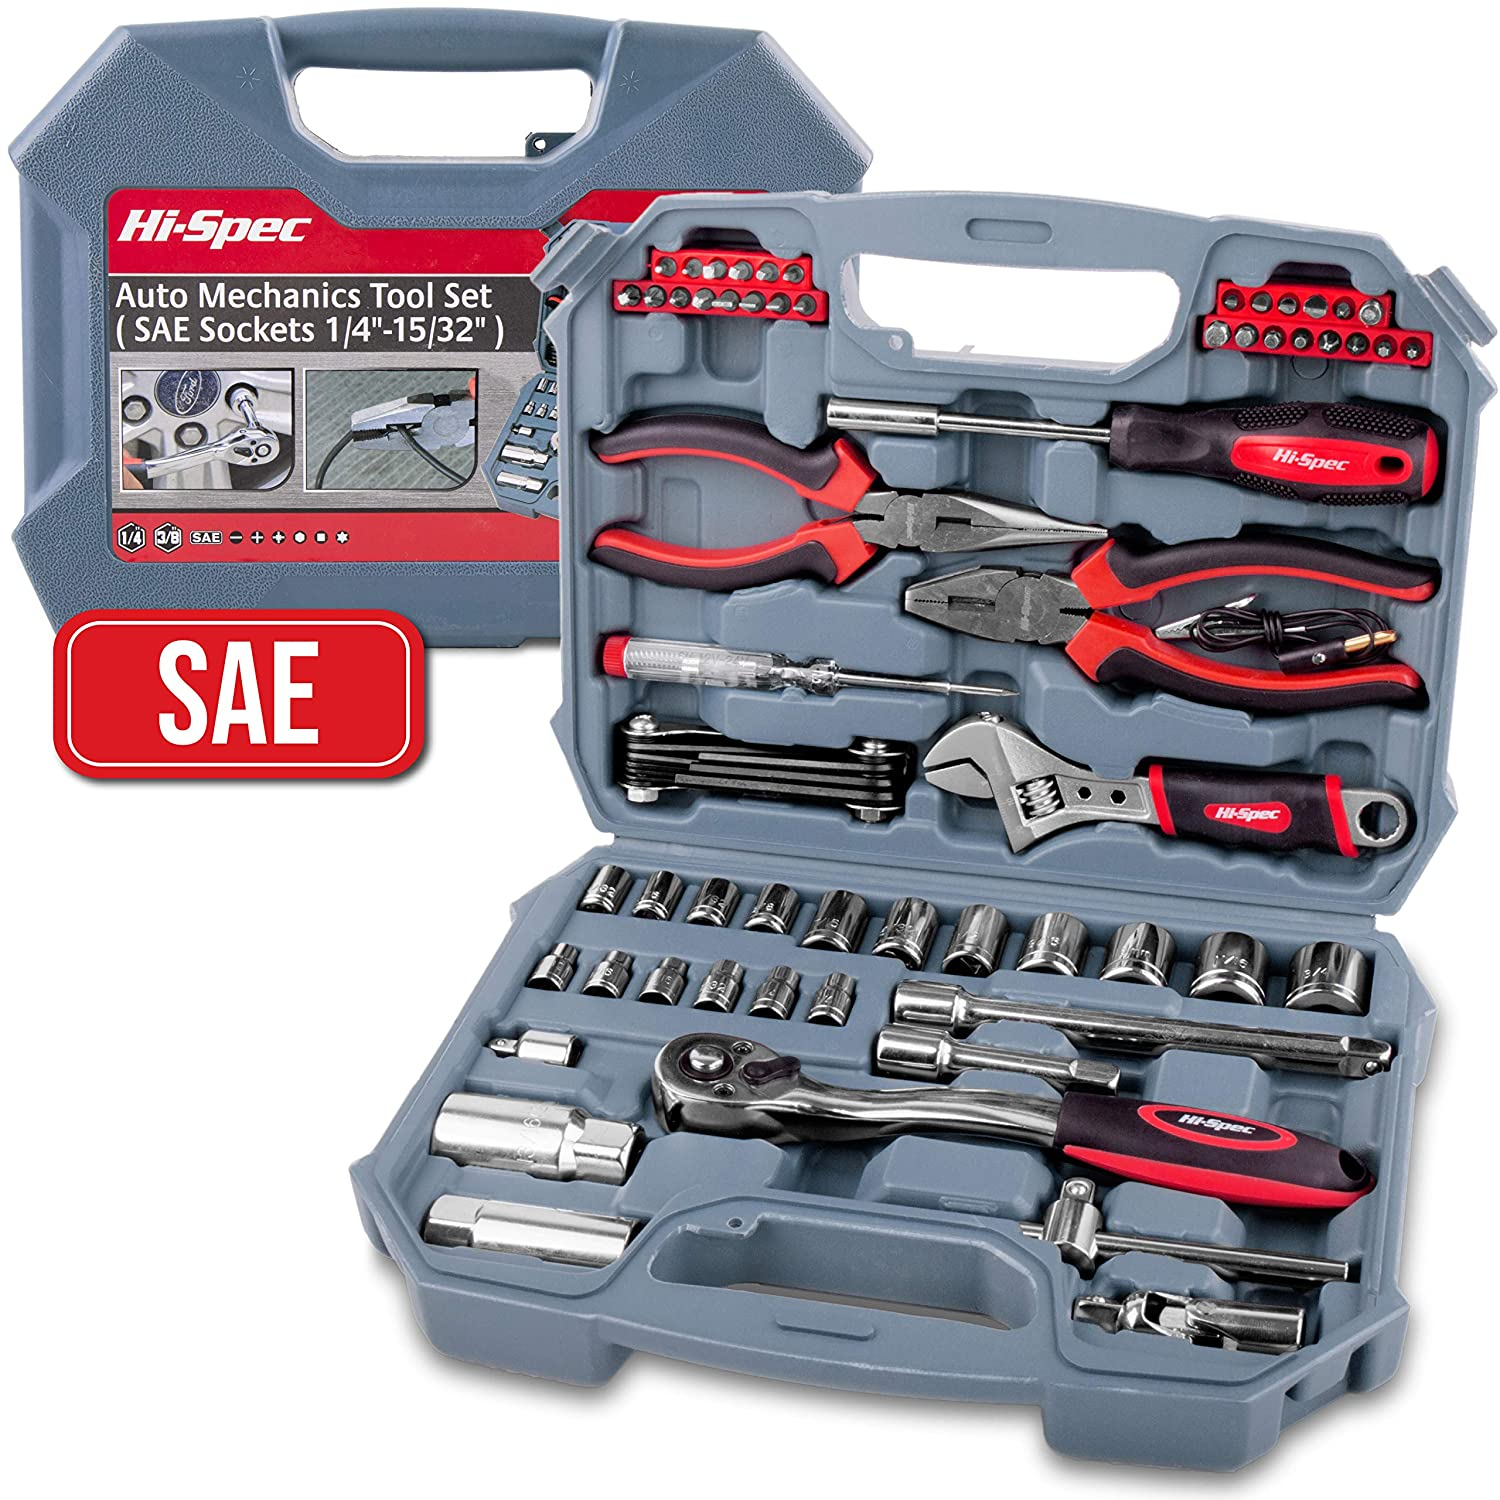 "Hi-Spec 67 Piece SAE Auto Mechanics Tool Set - Professional 3/8"" Quick Release Offset Ratchet with 72 Teeth, 5/32"" - 3/4"" SAE Sockets Set, T-Bar, Extension Bar, Hand Tools & Screw Bits in Storage Case"